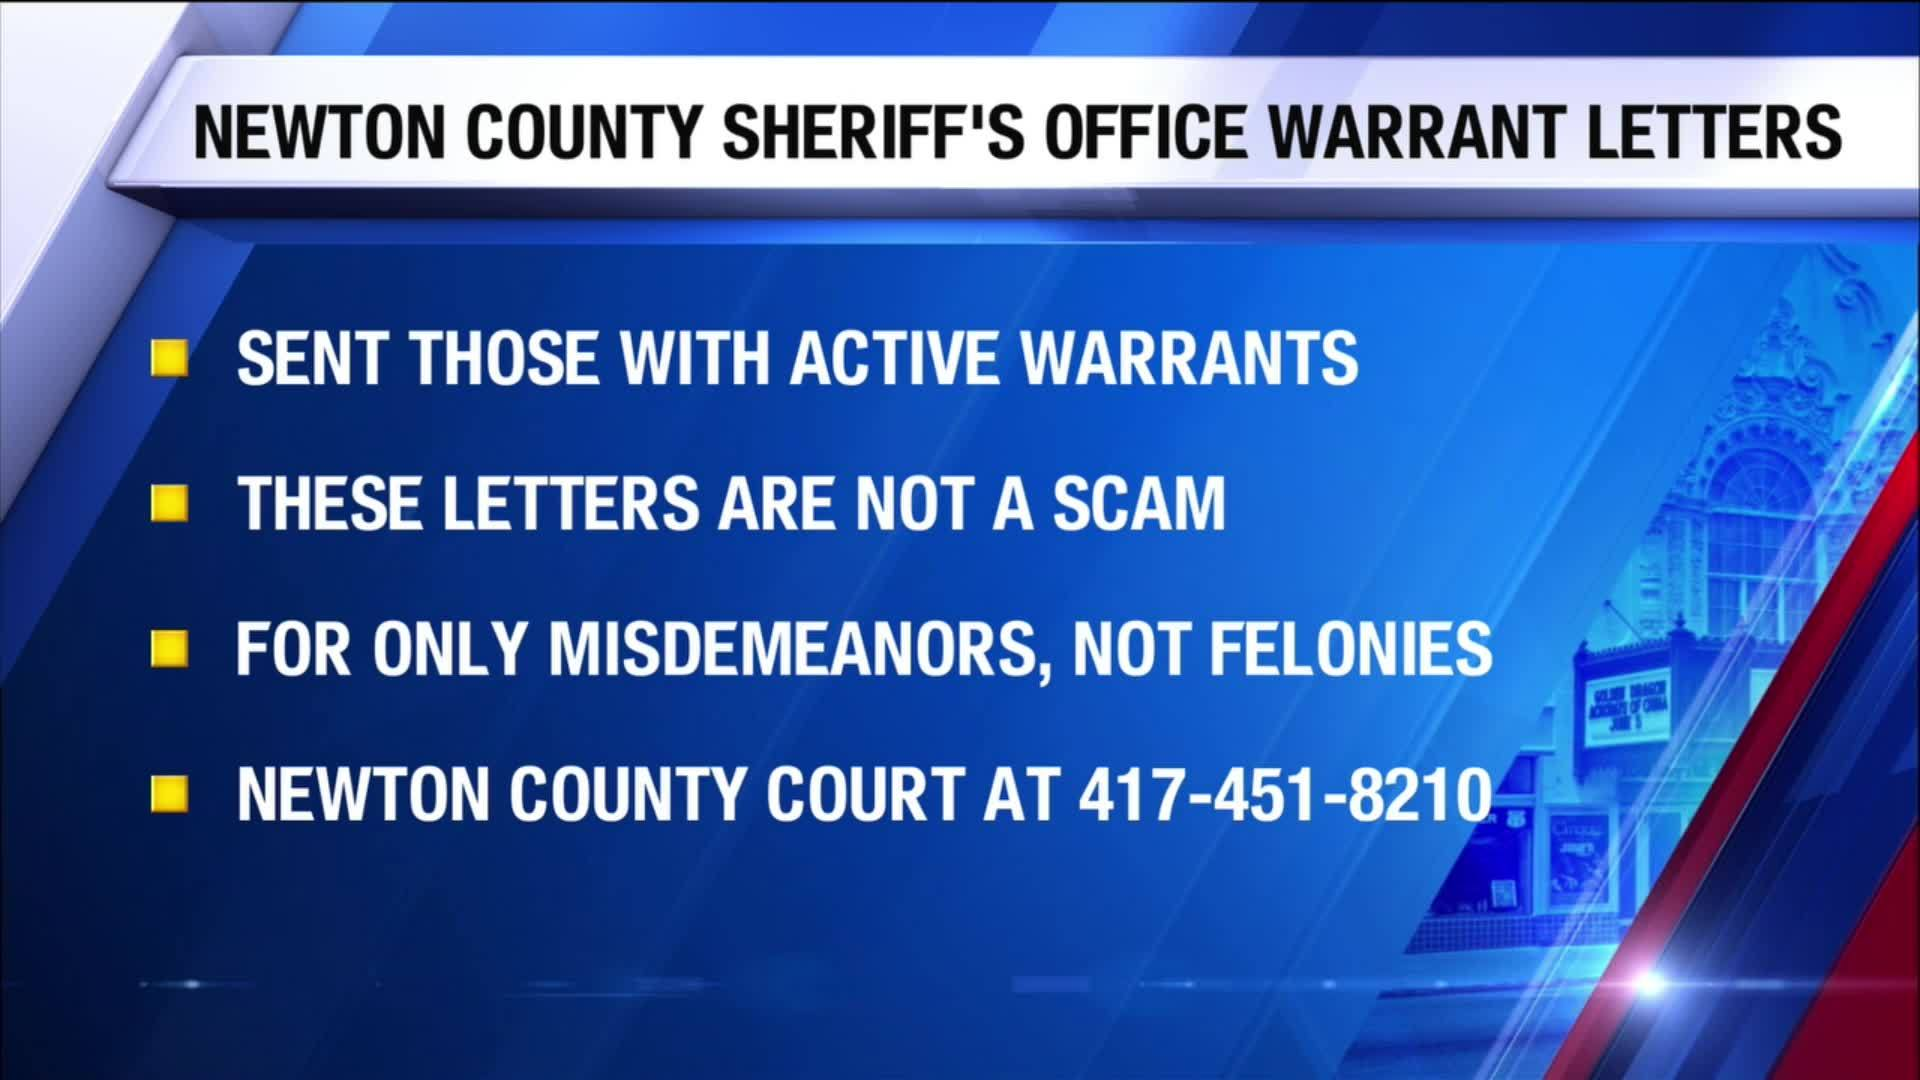 Newton County Sheriff's Office Warrant Letters